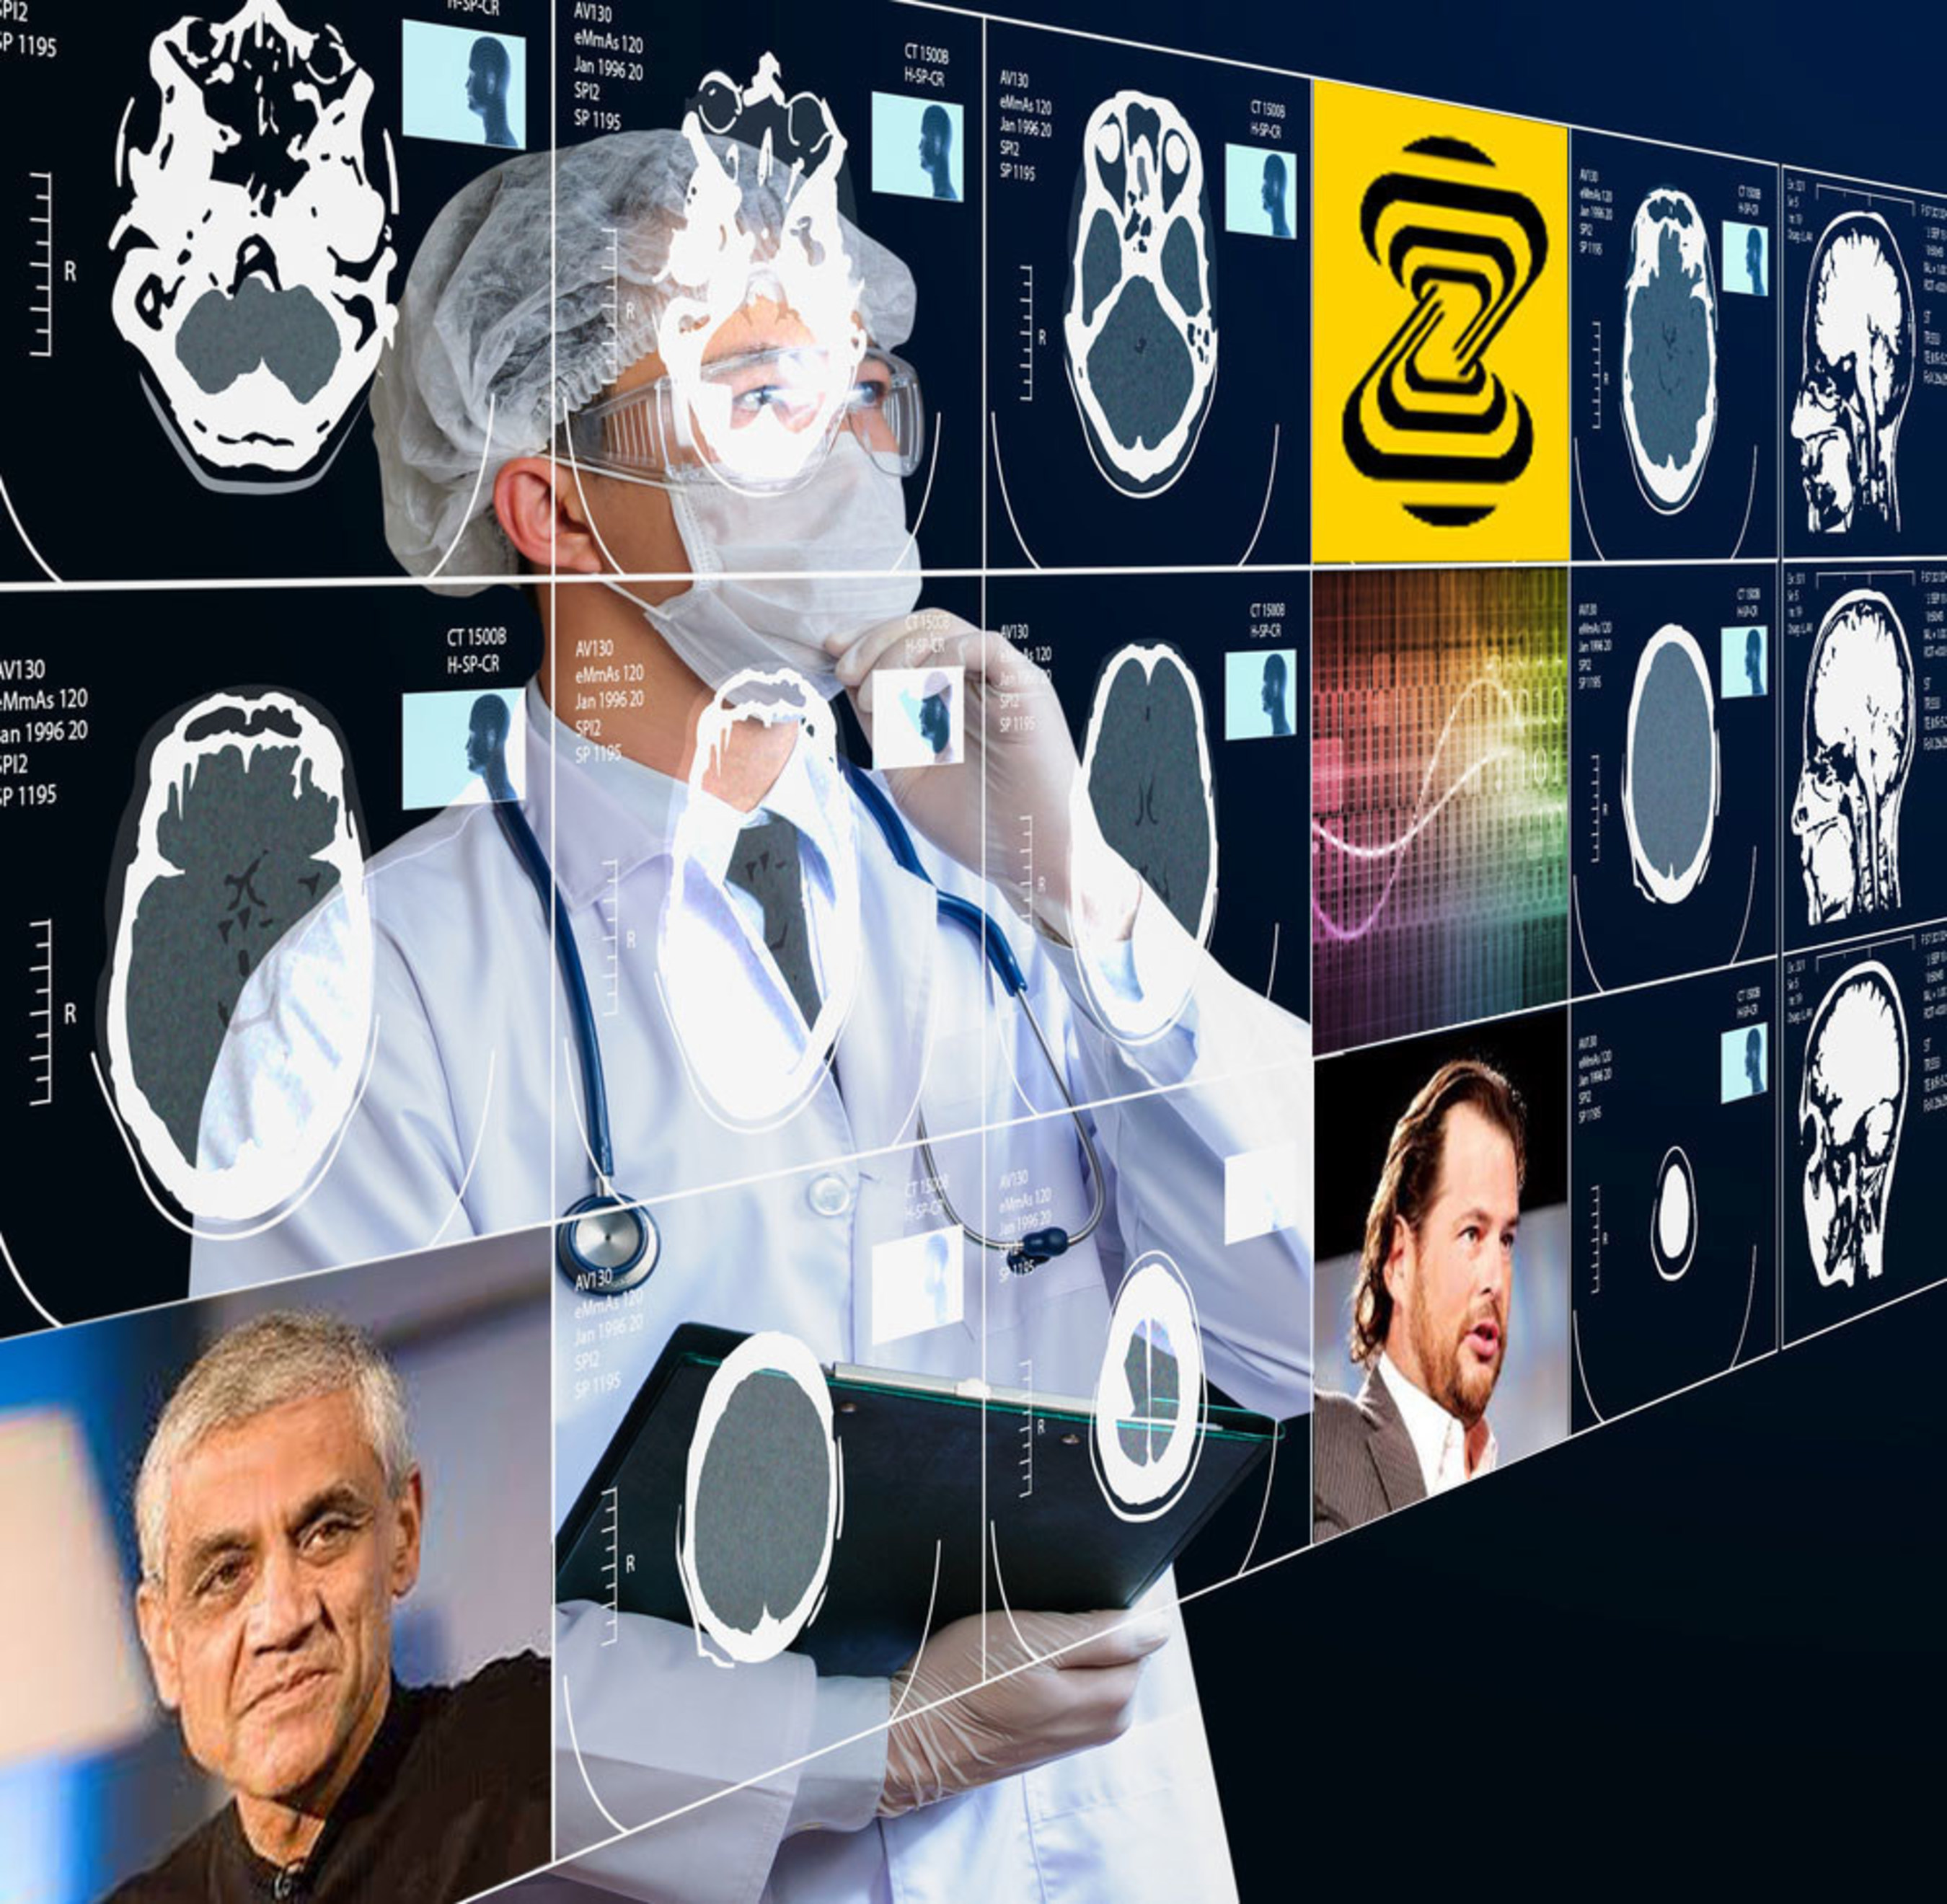 Zebra Medical Vision announce the launch of its medical imaging insights platform and funding from Khosla venture and Mark Benioff. Image credit : shutterstock, Wikipedia